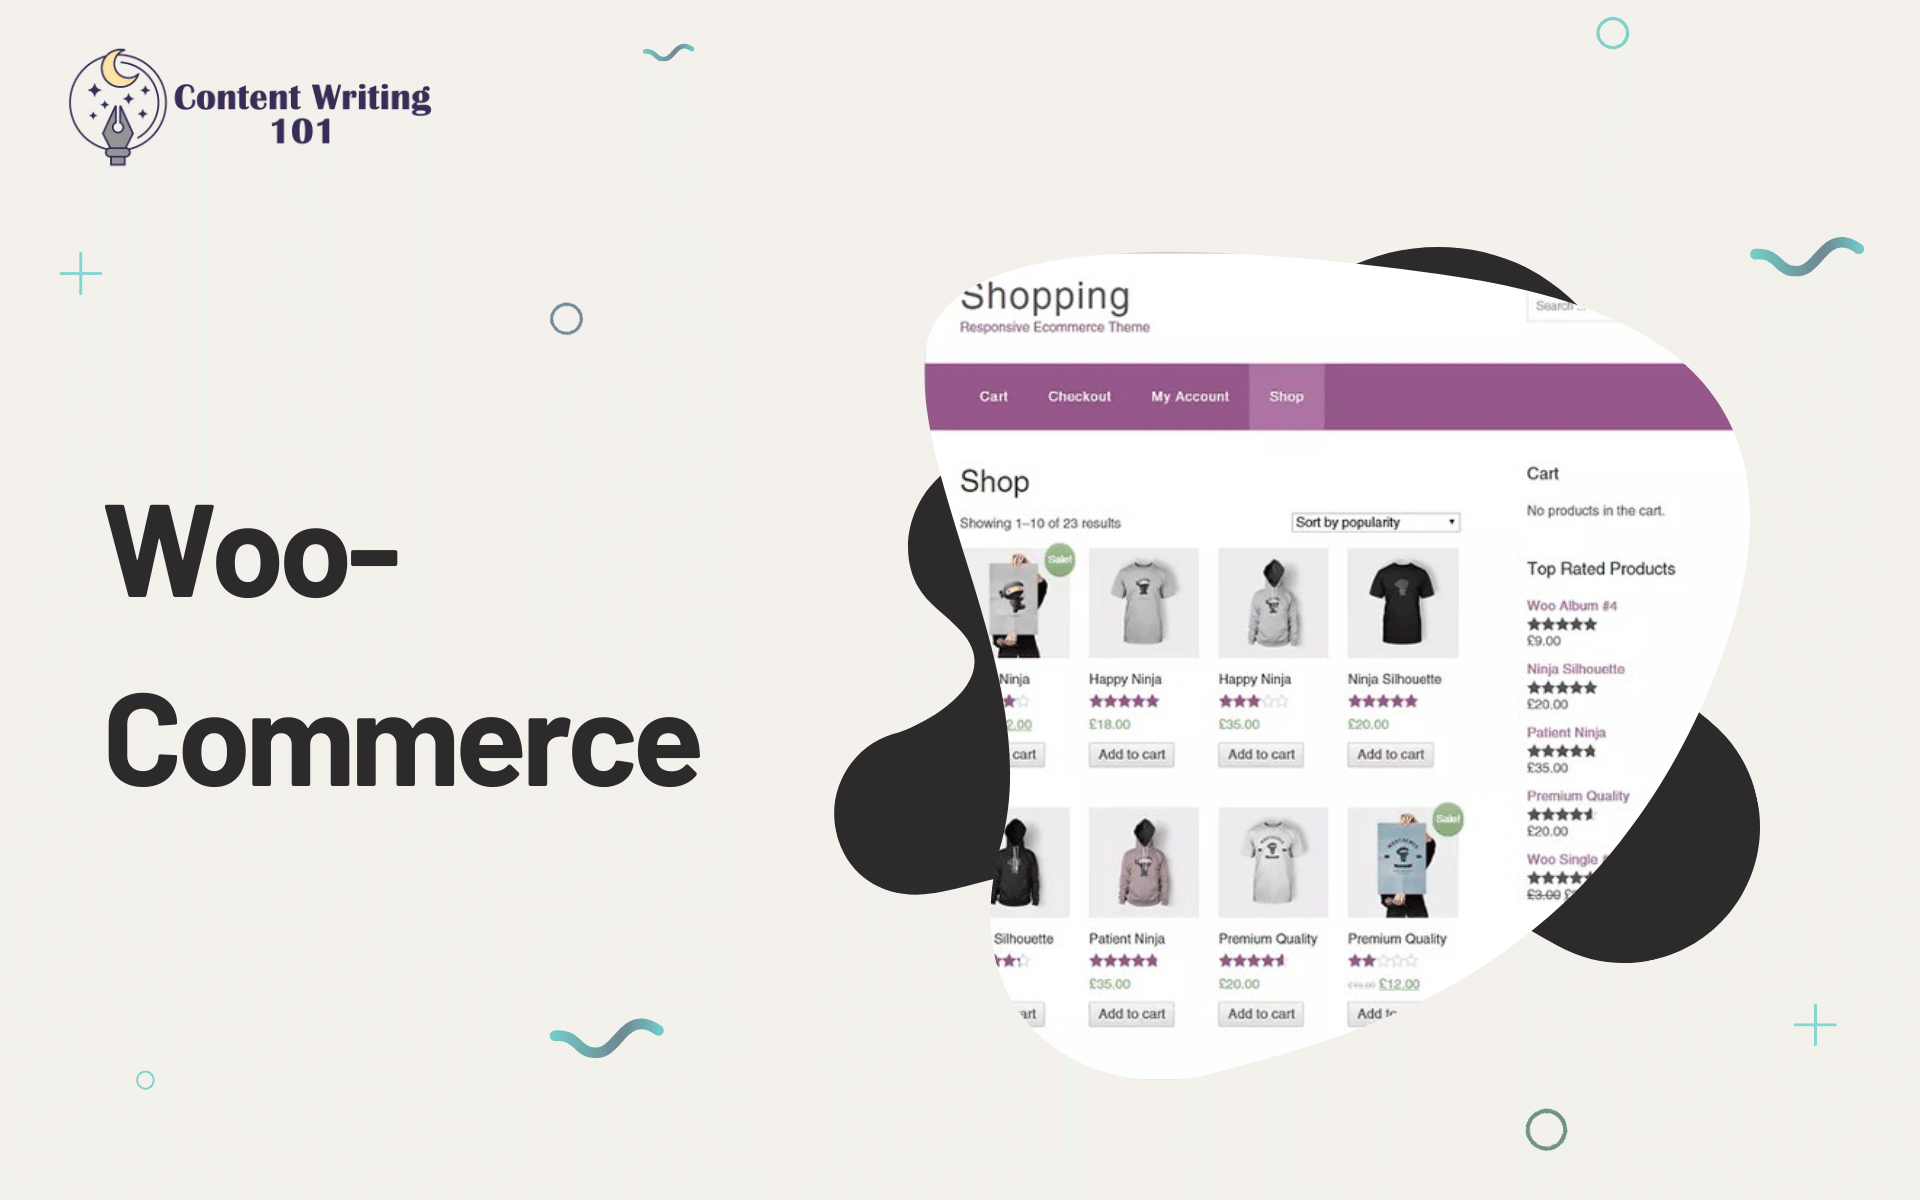 WooCommerce Content Writing 101